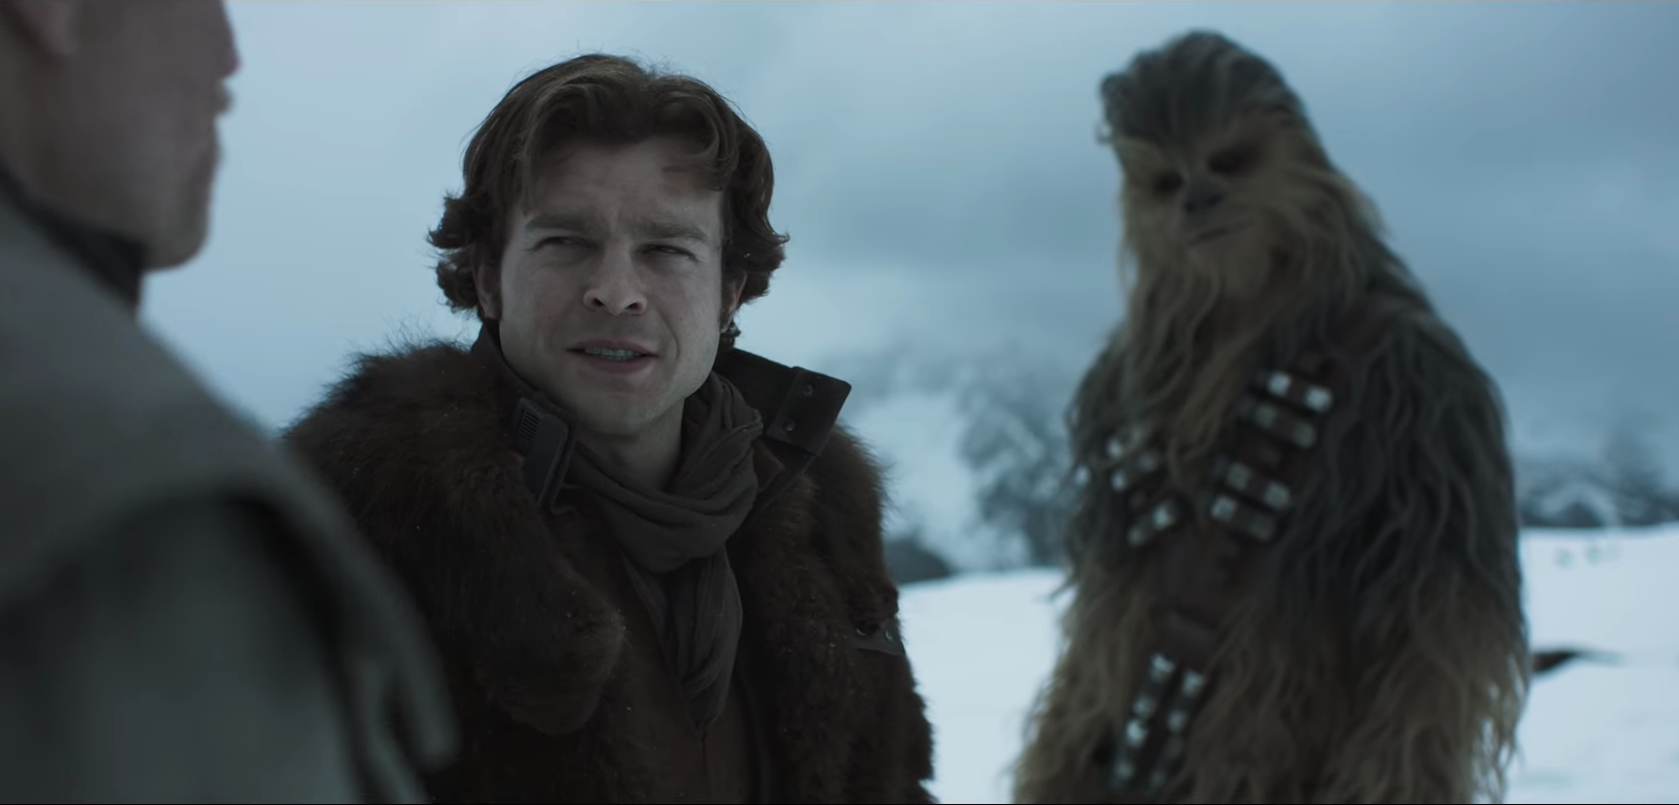 Han Solo - latest news, breaking stories and comment - The